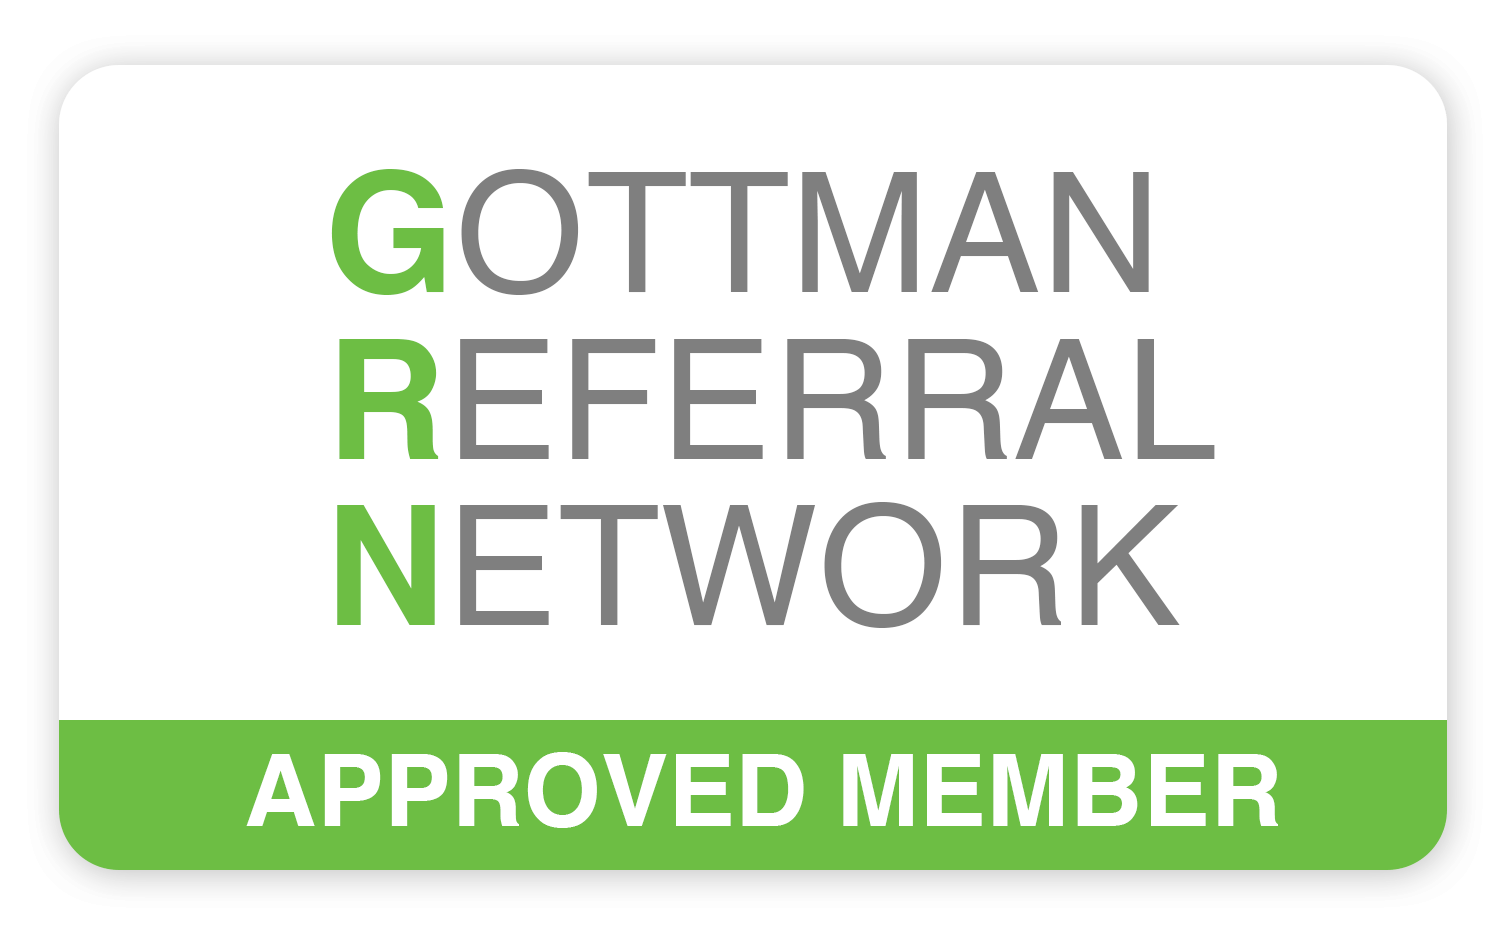 Alysha Roll's profile on the Gottman Referral Network